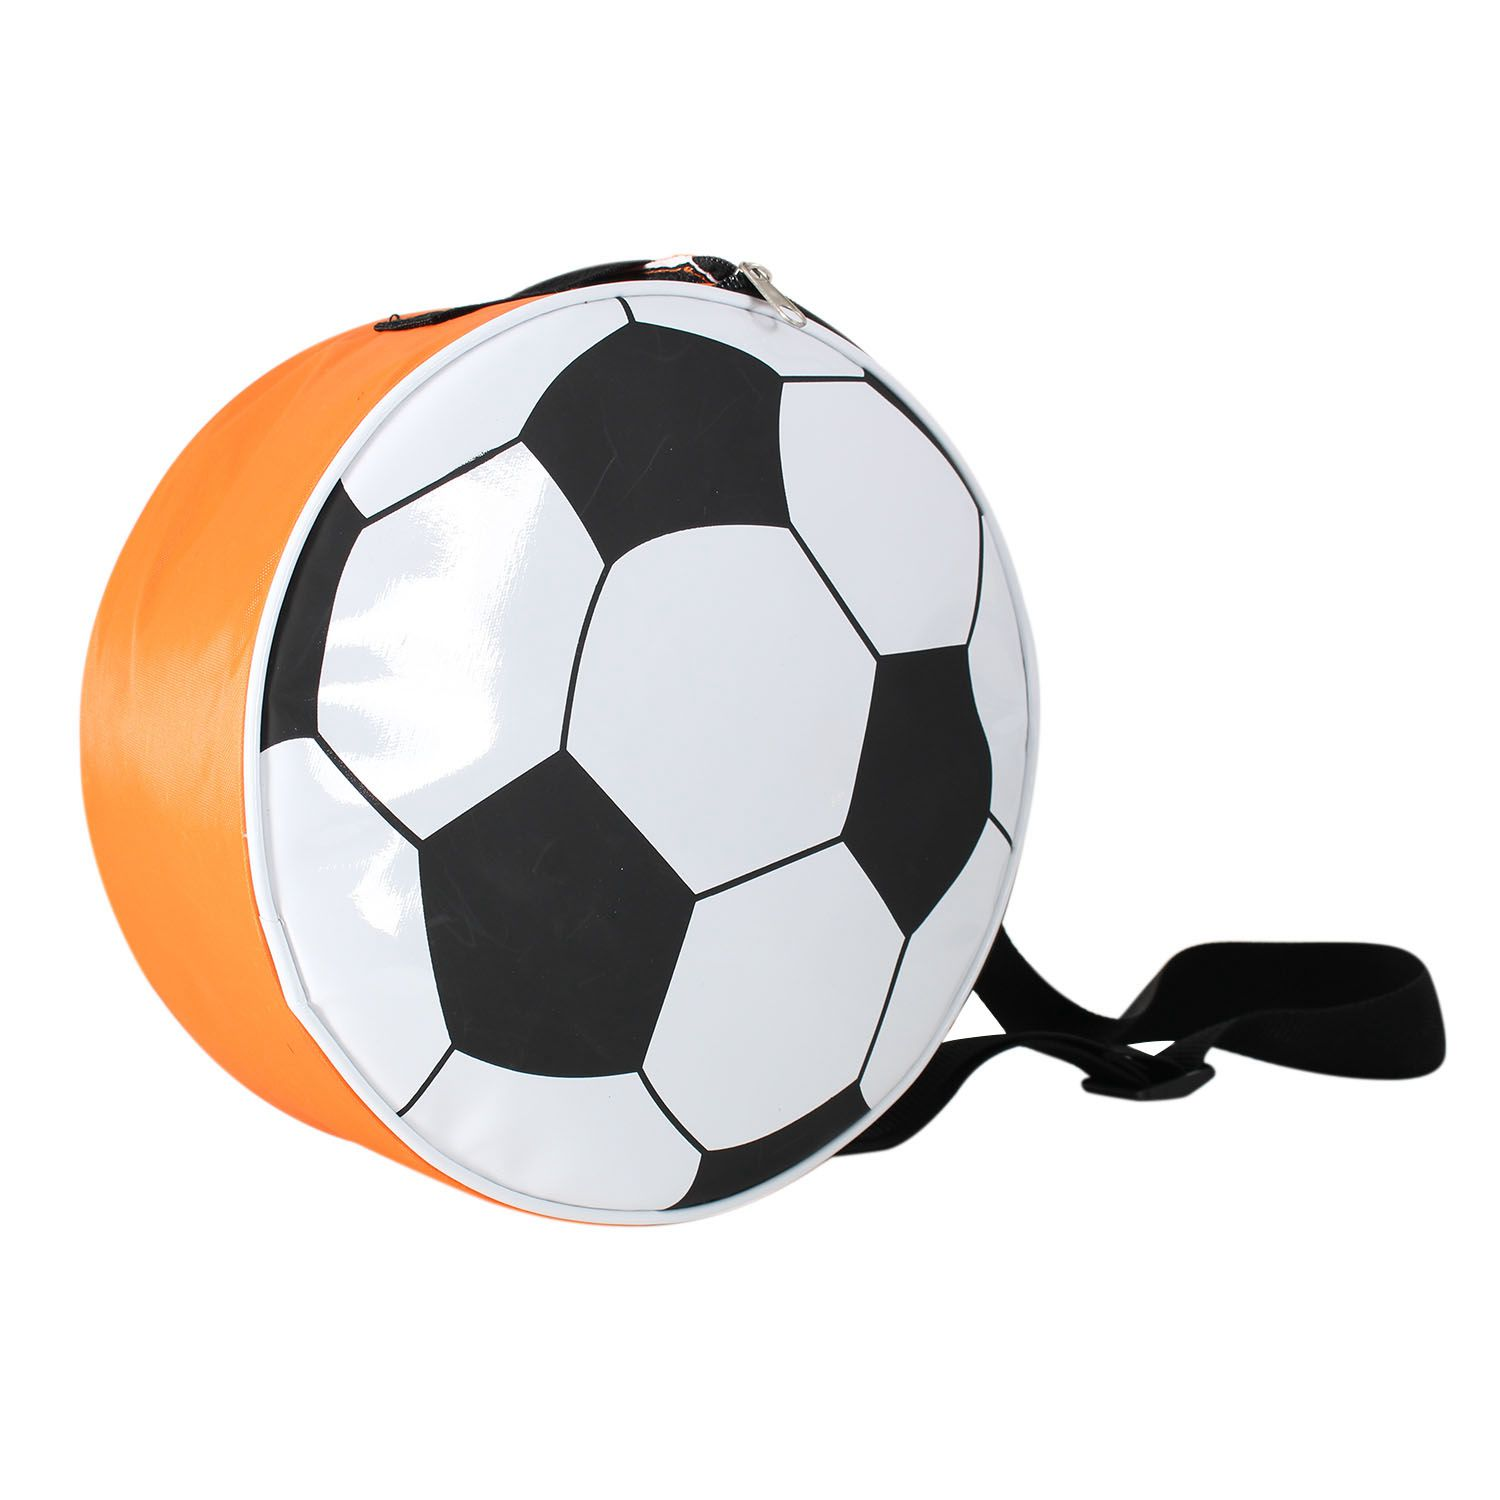 Insulated lunch bag shaped like a soccer ball Kids Soccer Carry Bag Novelty Lunch Ball by Sport